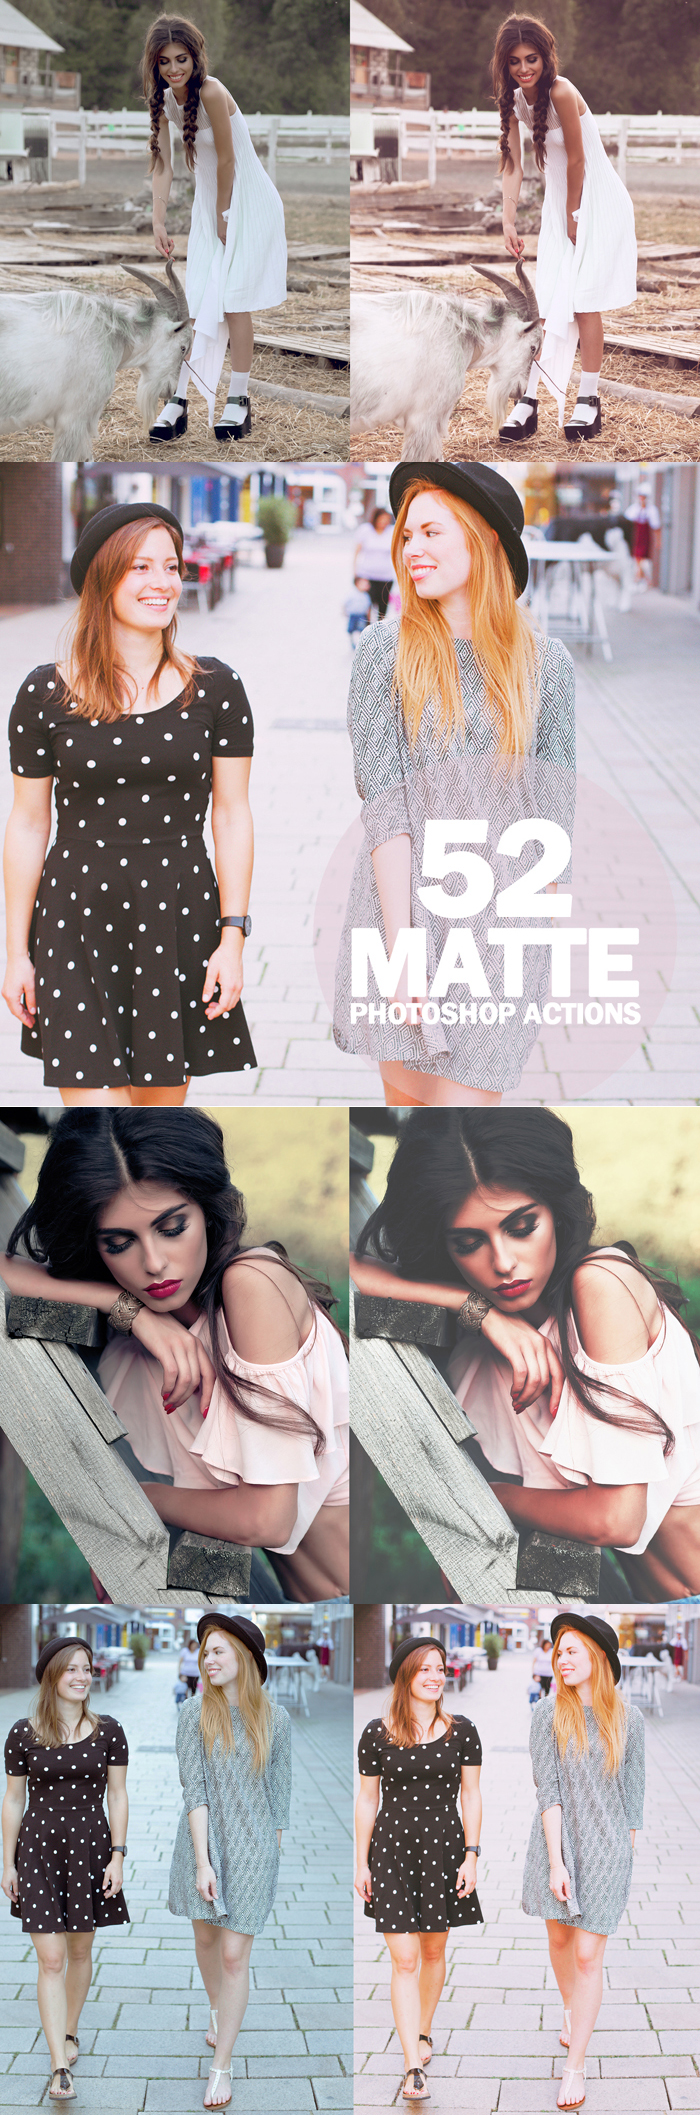 1850 Photoshop Actions example image 14